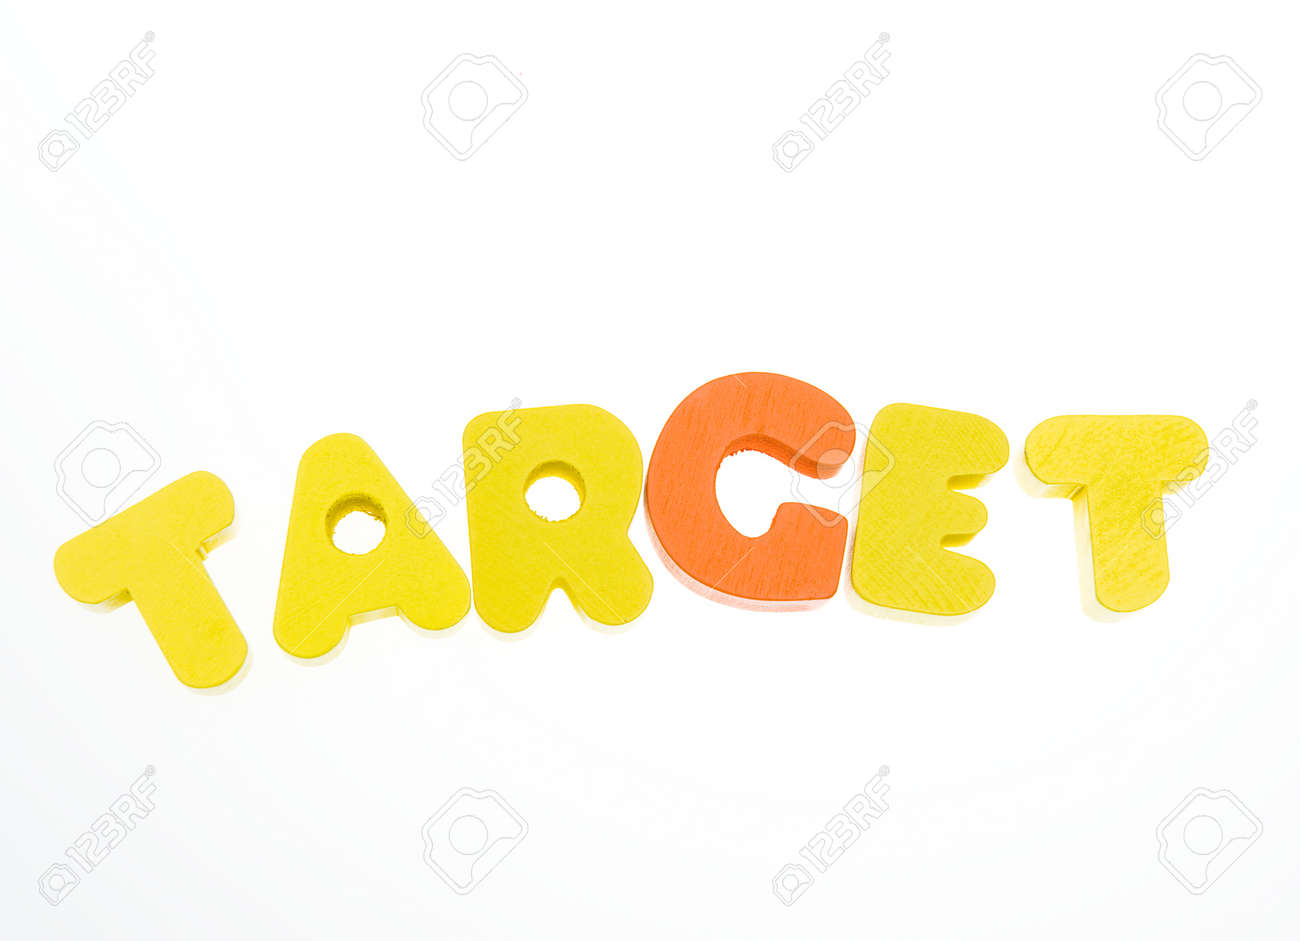 stock photo wooden letters spelling the word target on white background